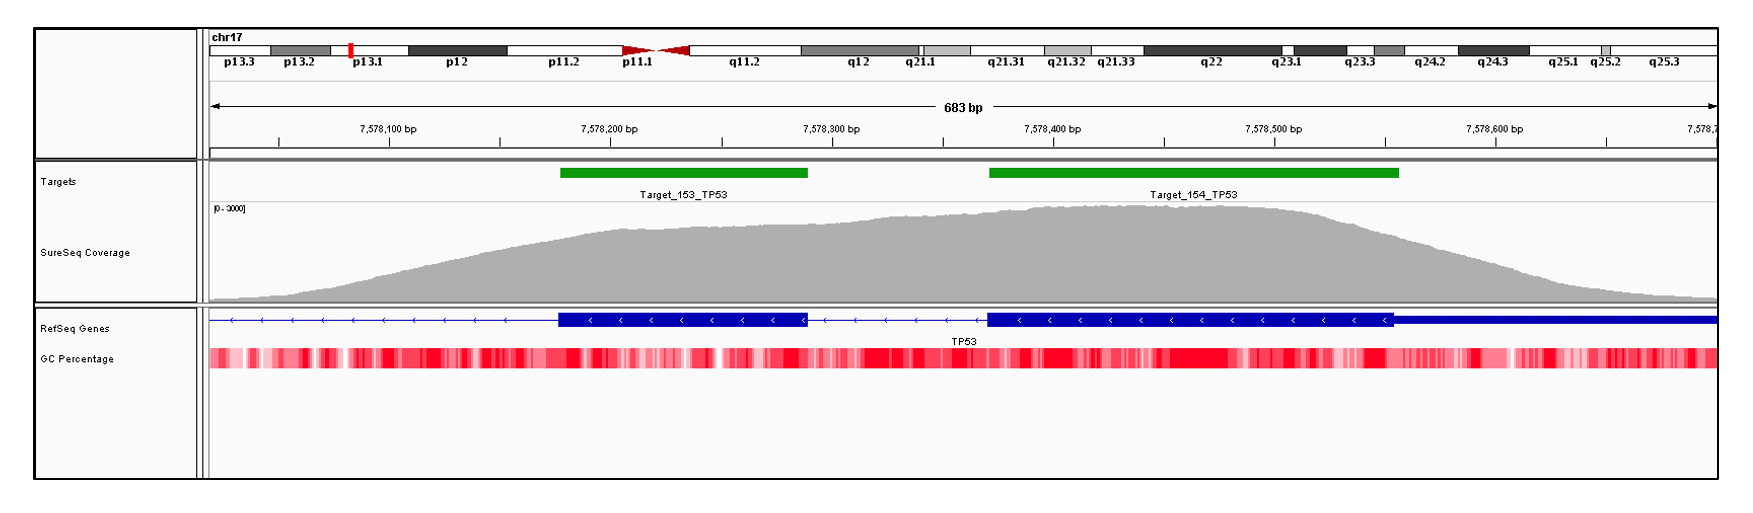 TP53 Exon 5 (hg19 chr17:7578371-7578554) and 6 (hg19 chr17:7578177-7578289). Depth of coverage per base (grey). Targeted region (green). Gene coding region as defined by RefSeq (blue). GC percentage (red). Image